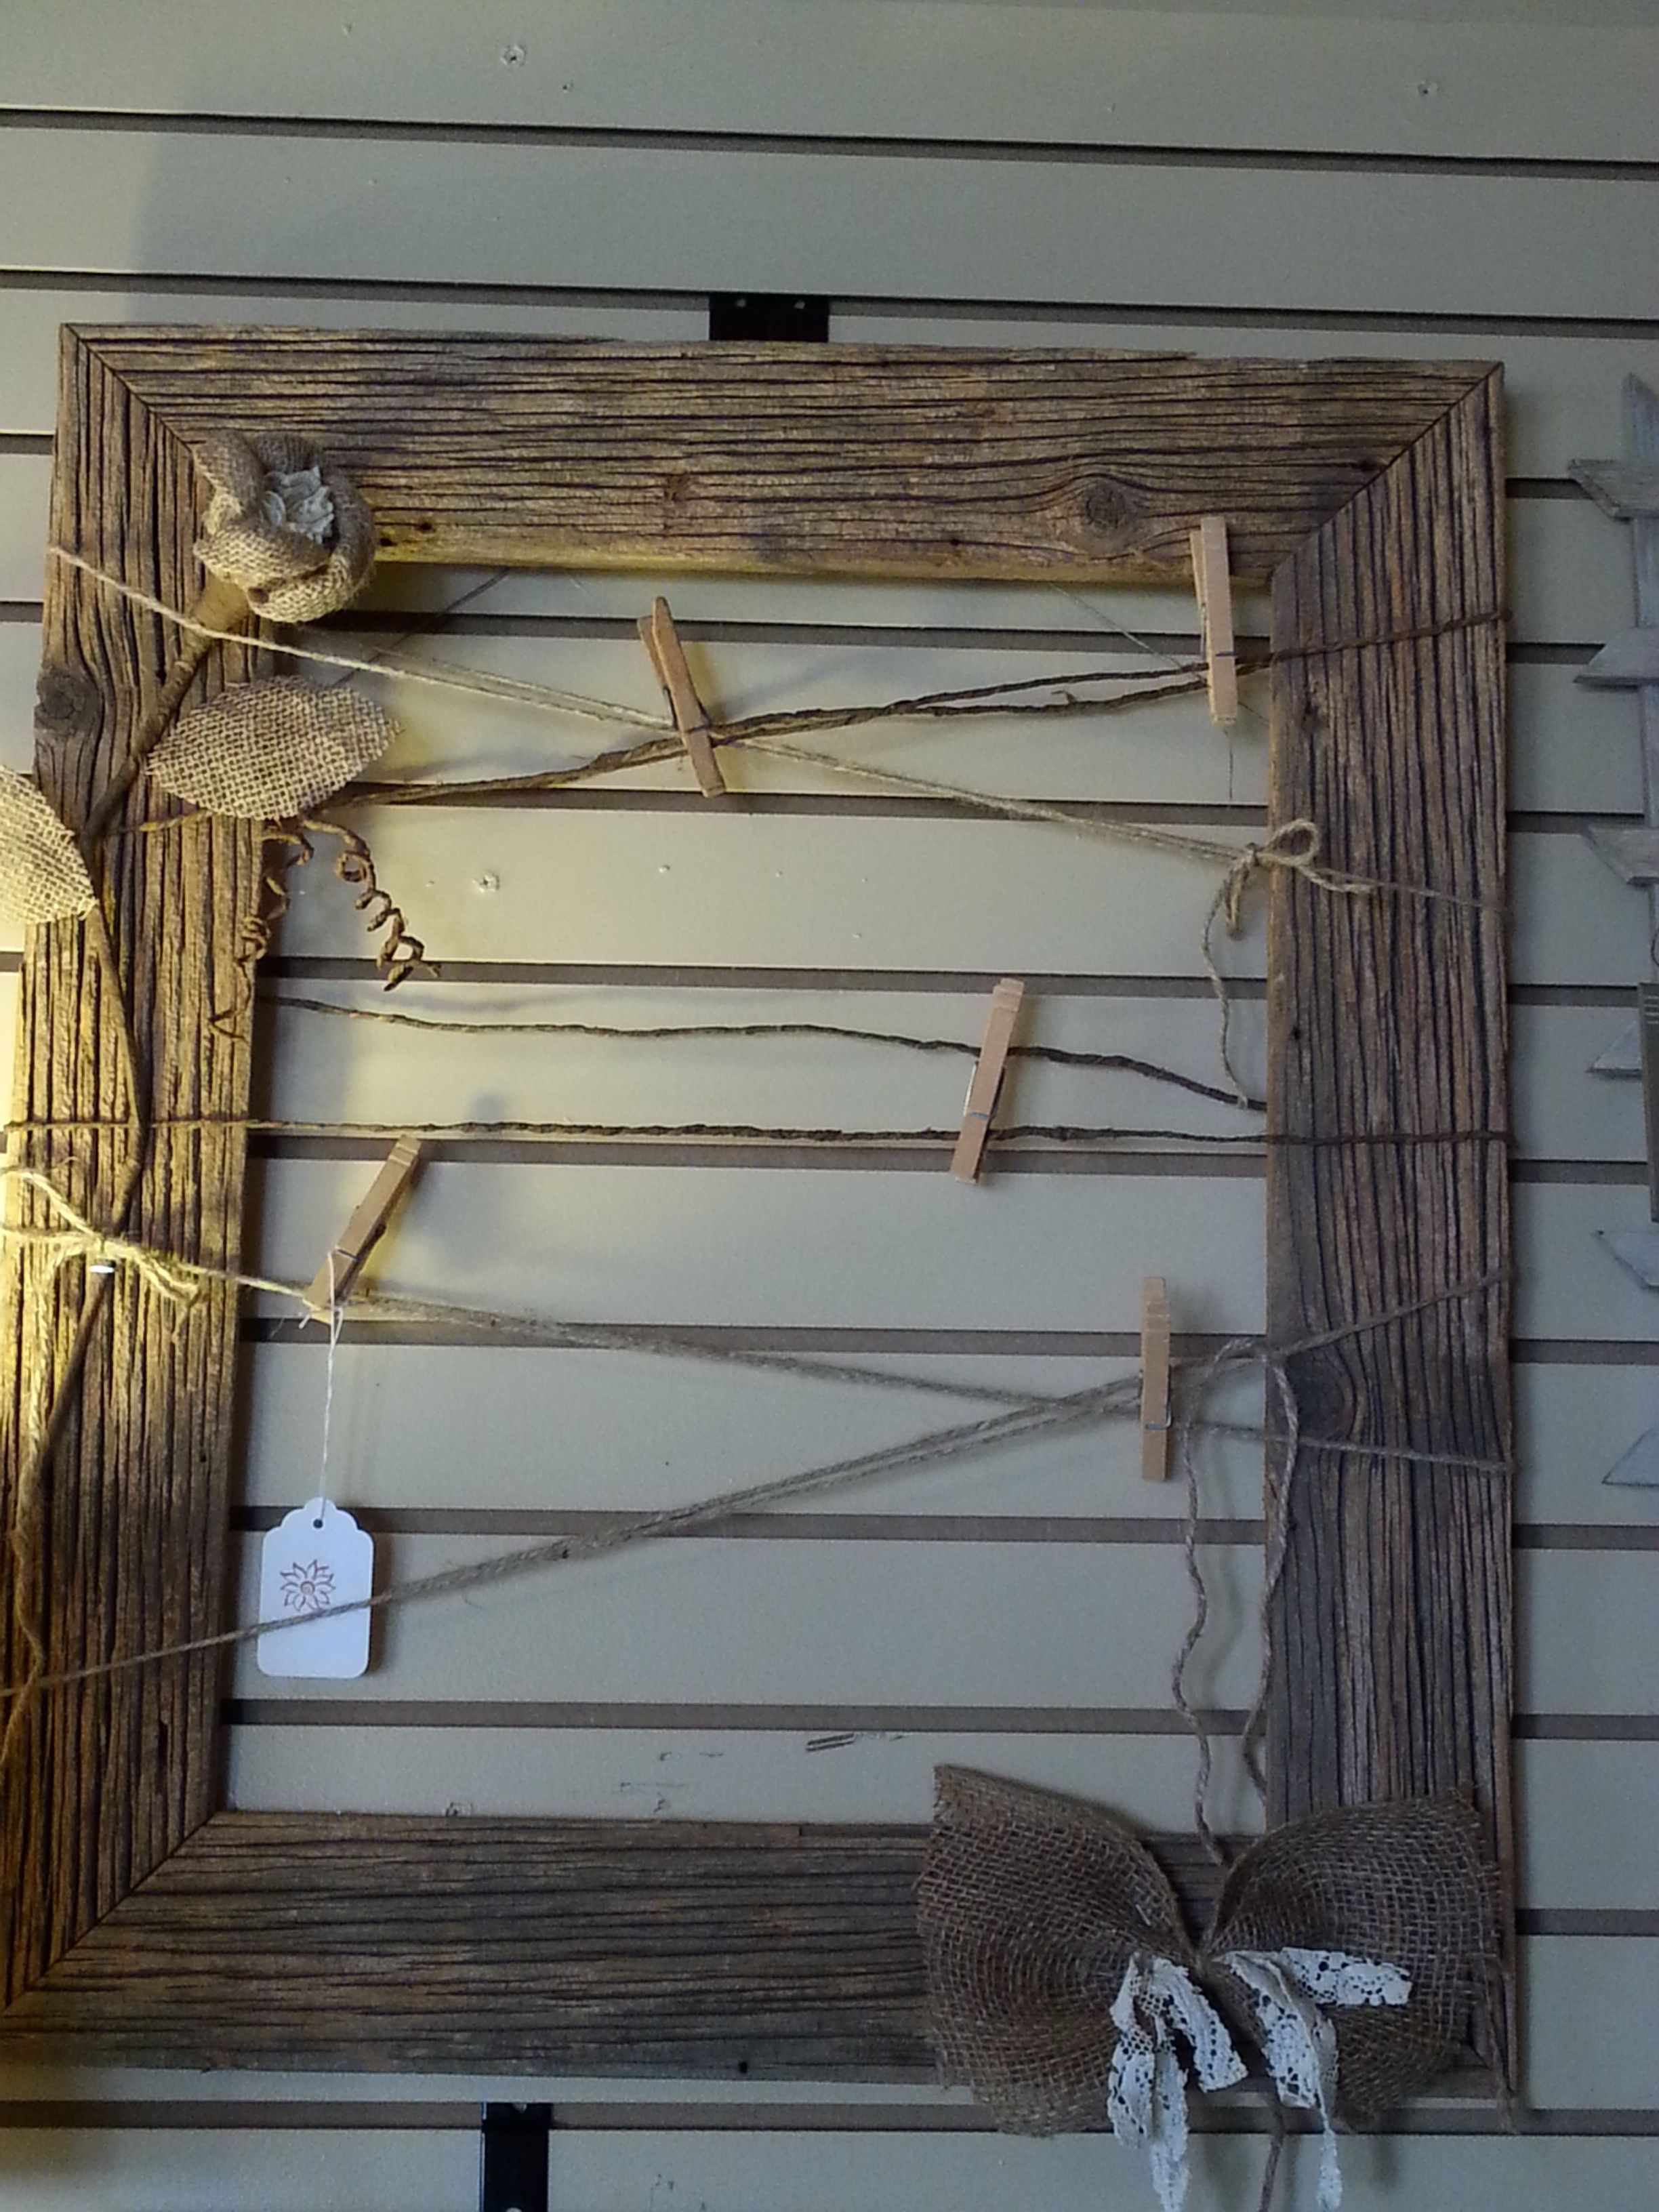 Old, Rustic Barn Wood Made Into A Picture Frame With Twine And Clothespins.  Accented